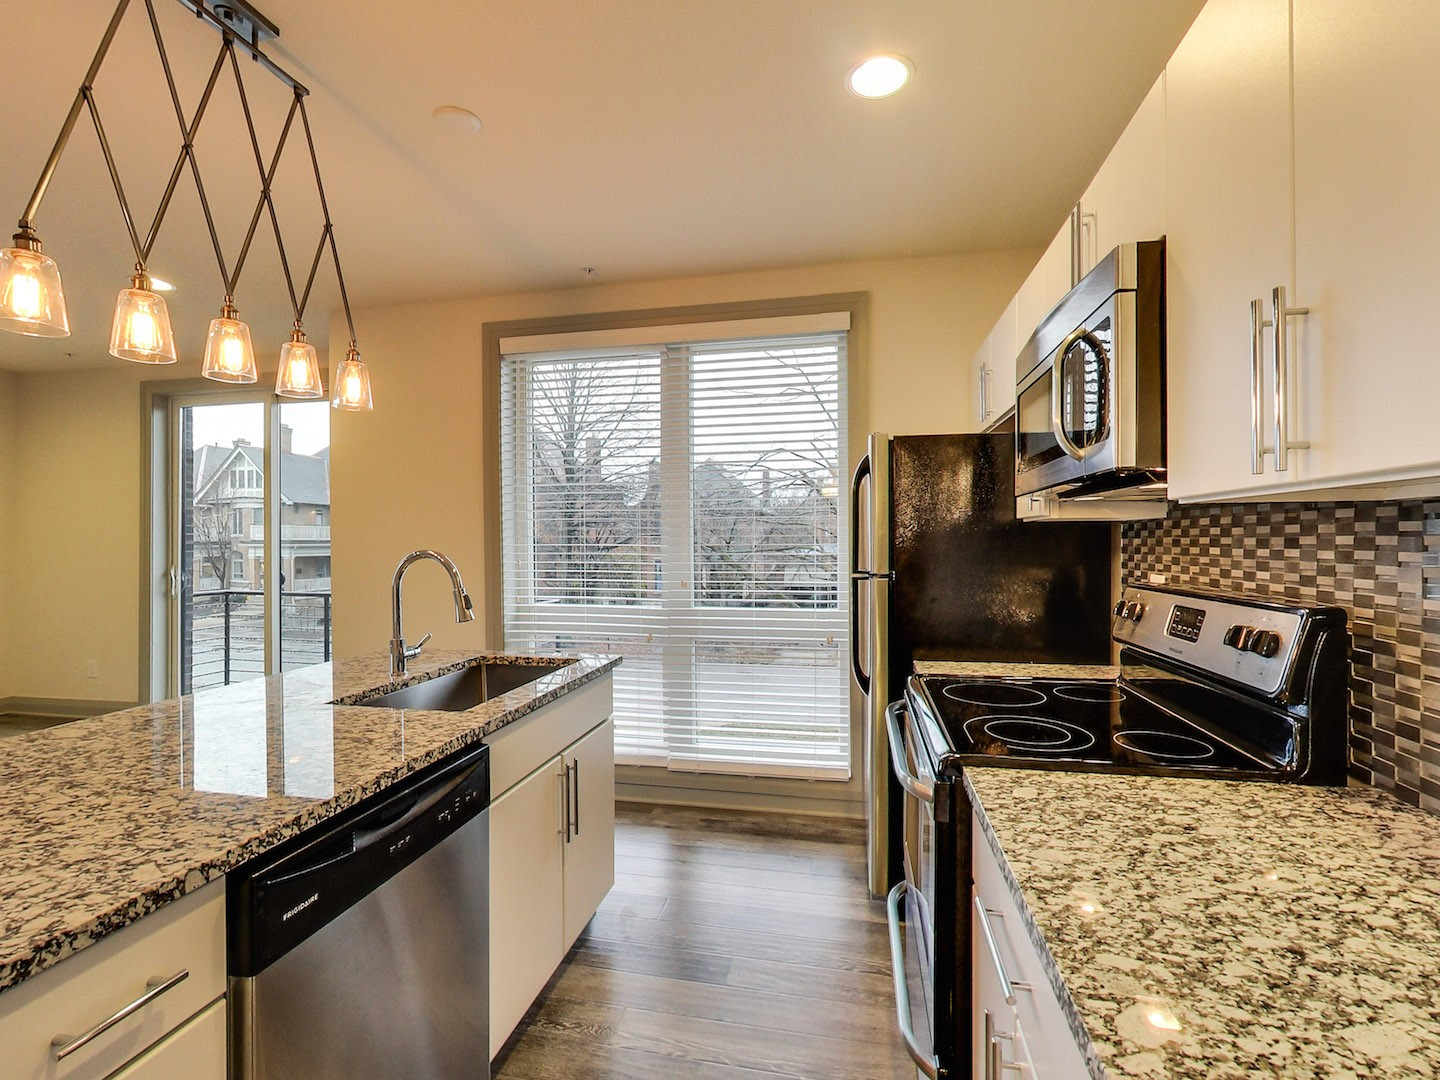 Rental Pick Of The Week: Brand New One Bedroom In The